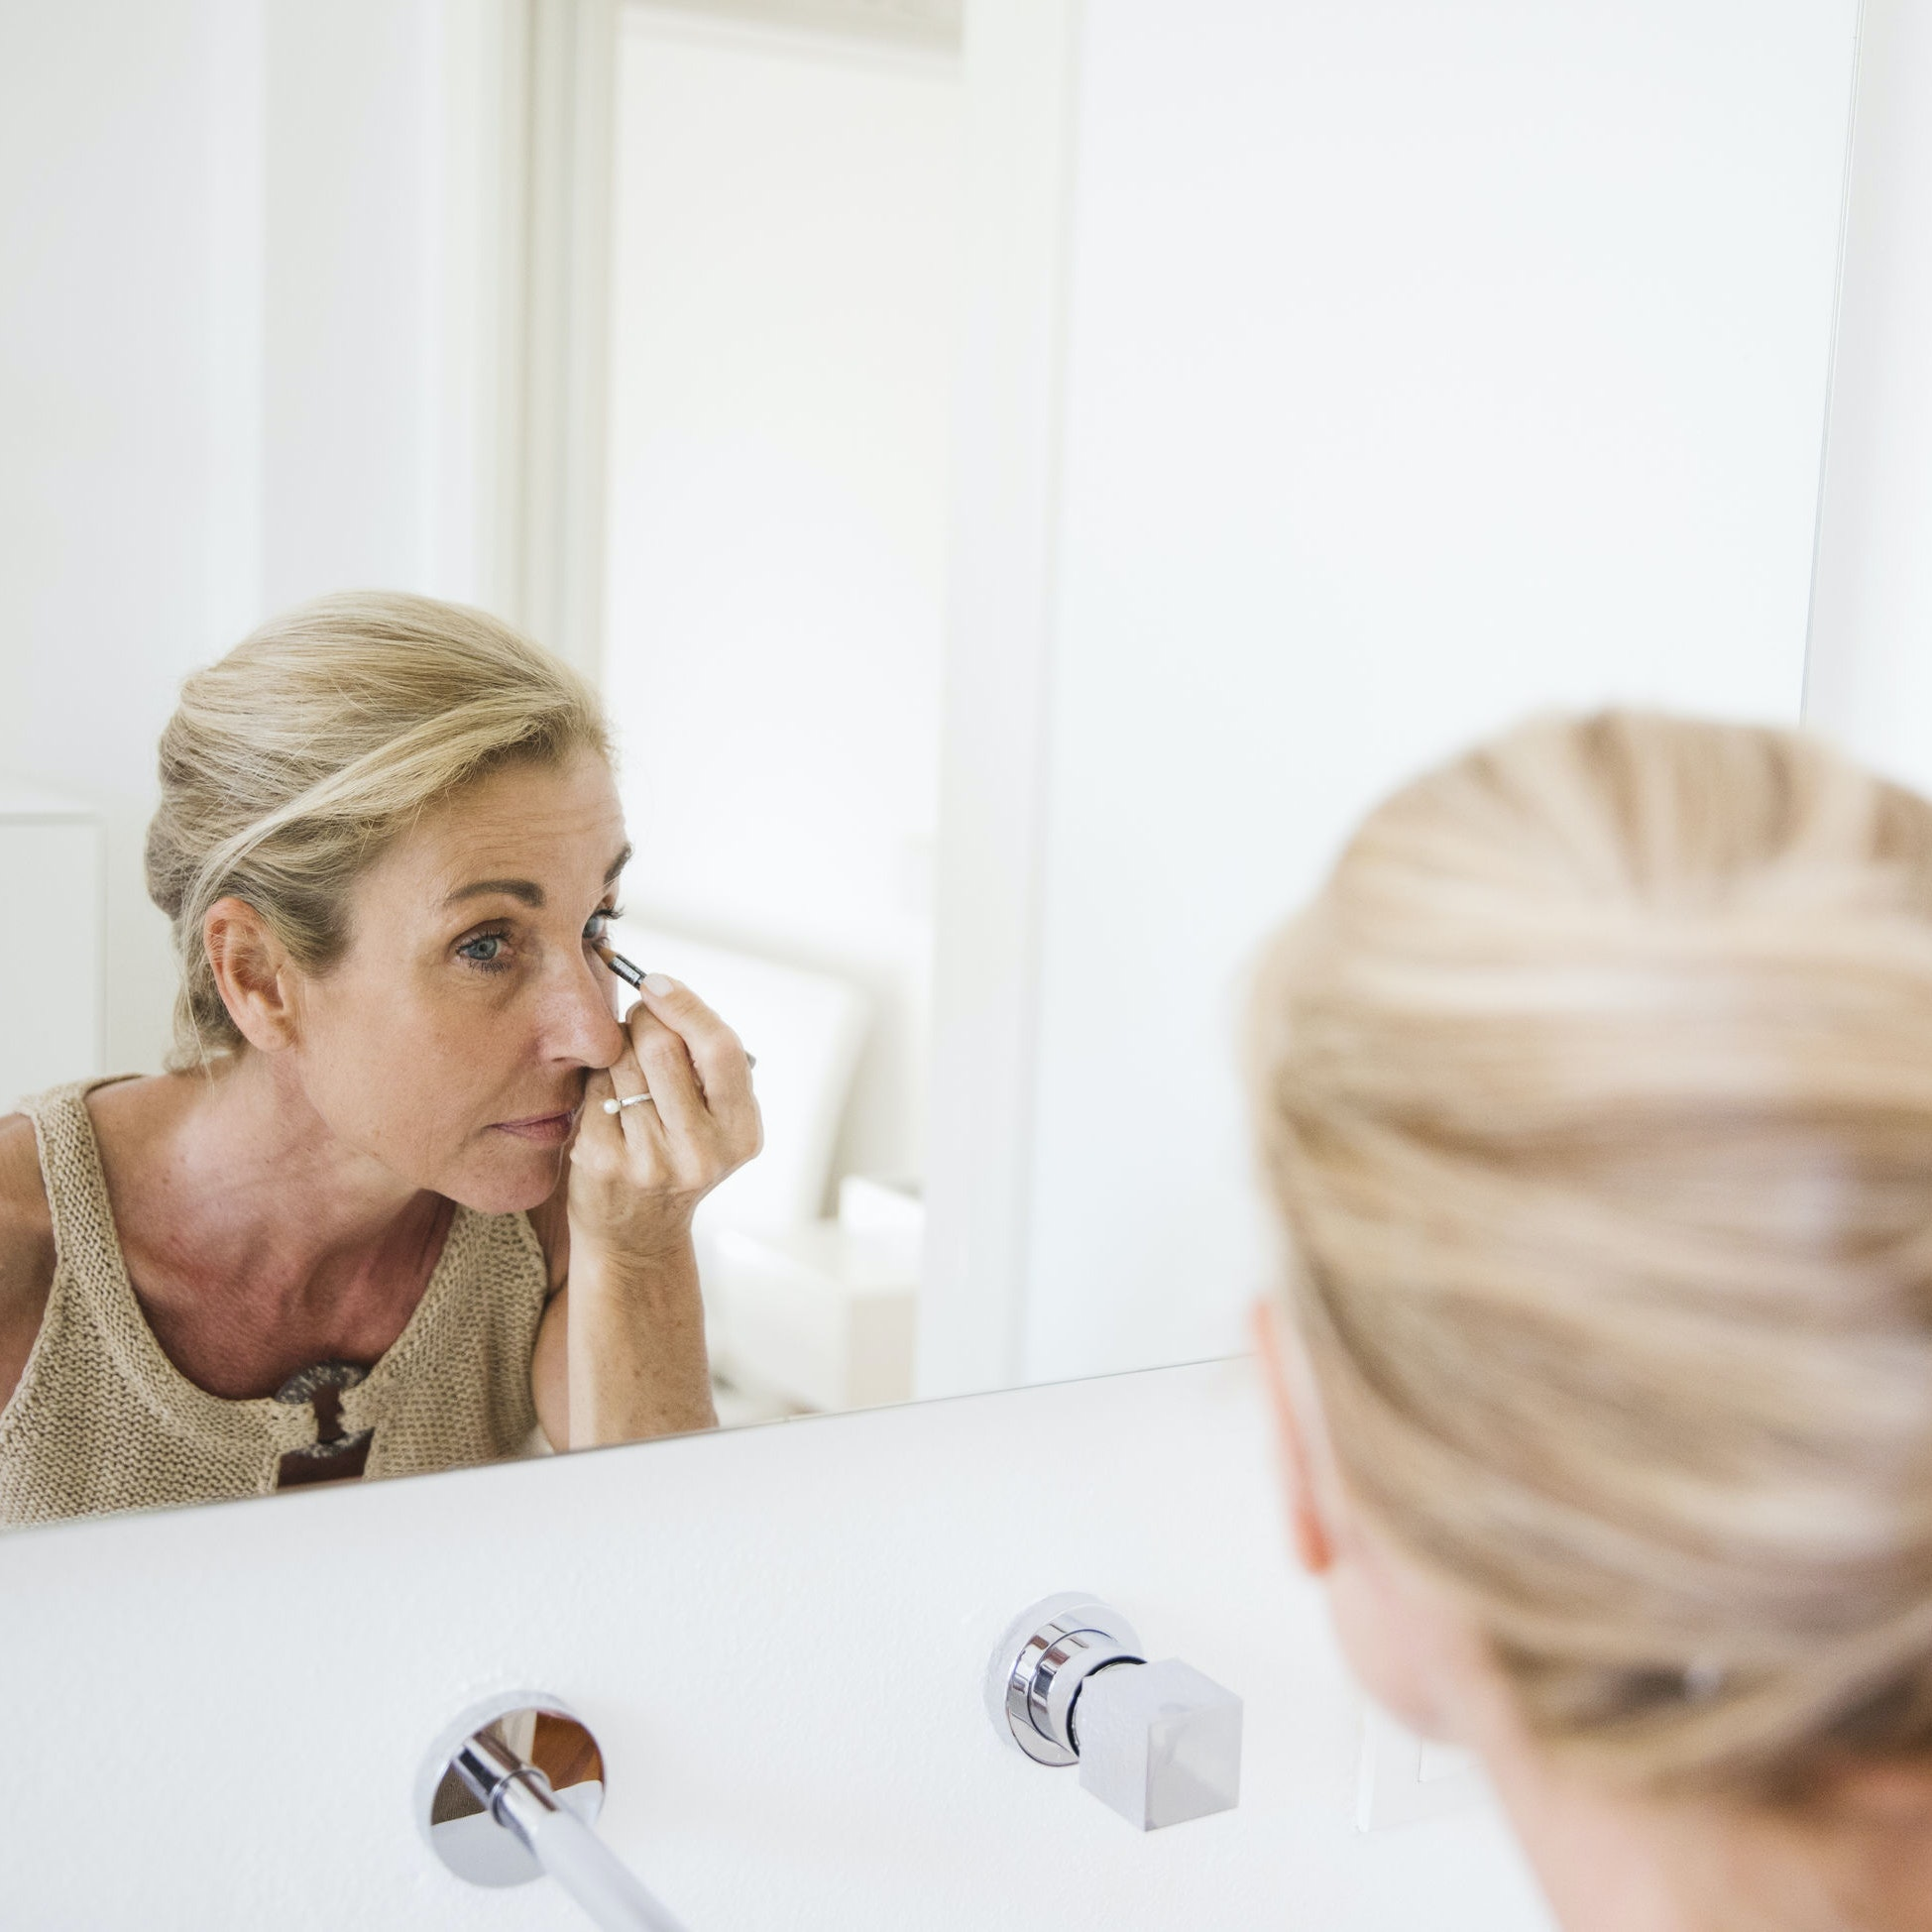 The 4 Biggest Mistakes You Need to Avoid When Getting Wrinkle Reducers For the First Time